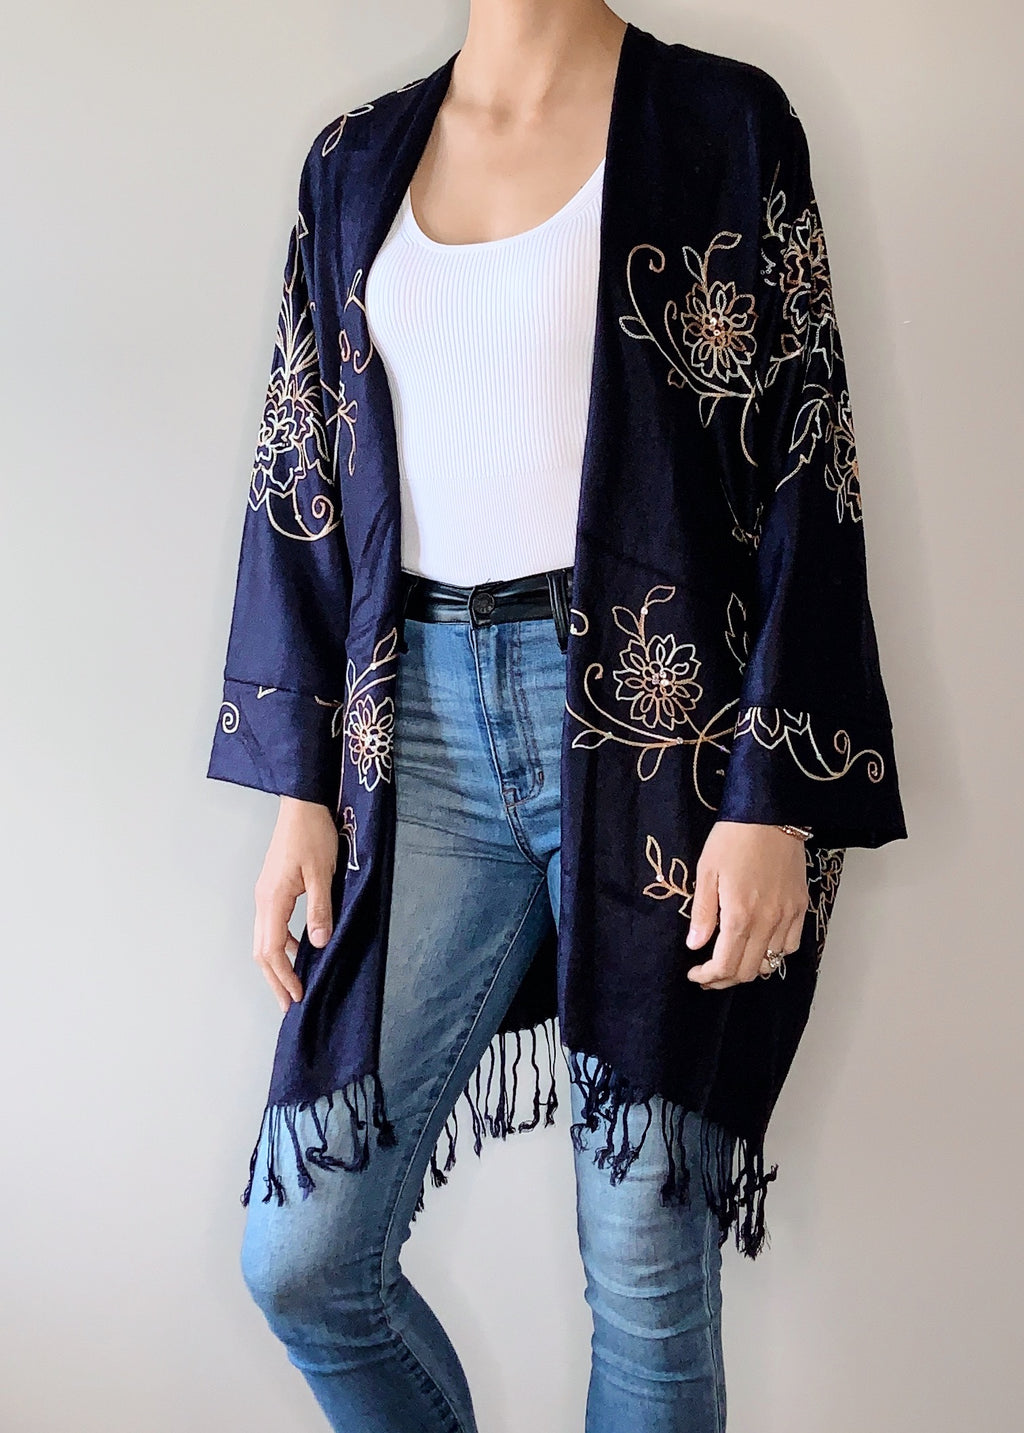 Nostalgia Boho Jacket in Navy with Cuffs